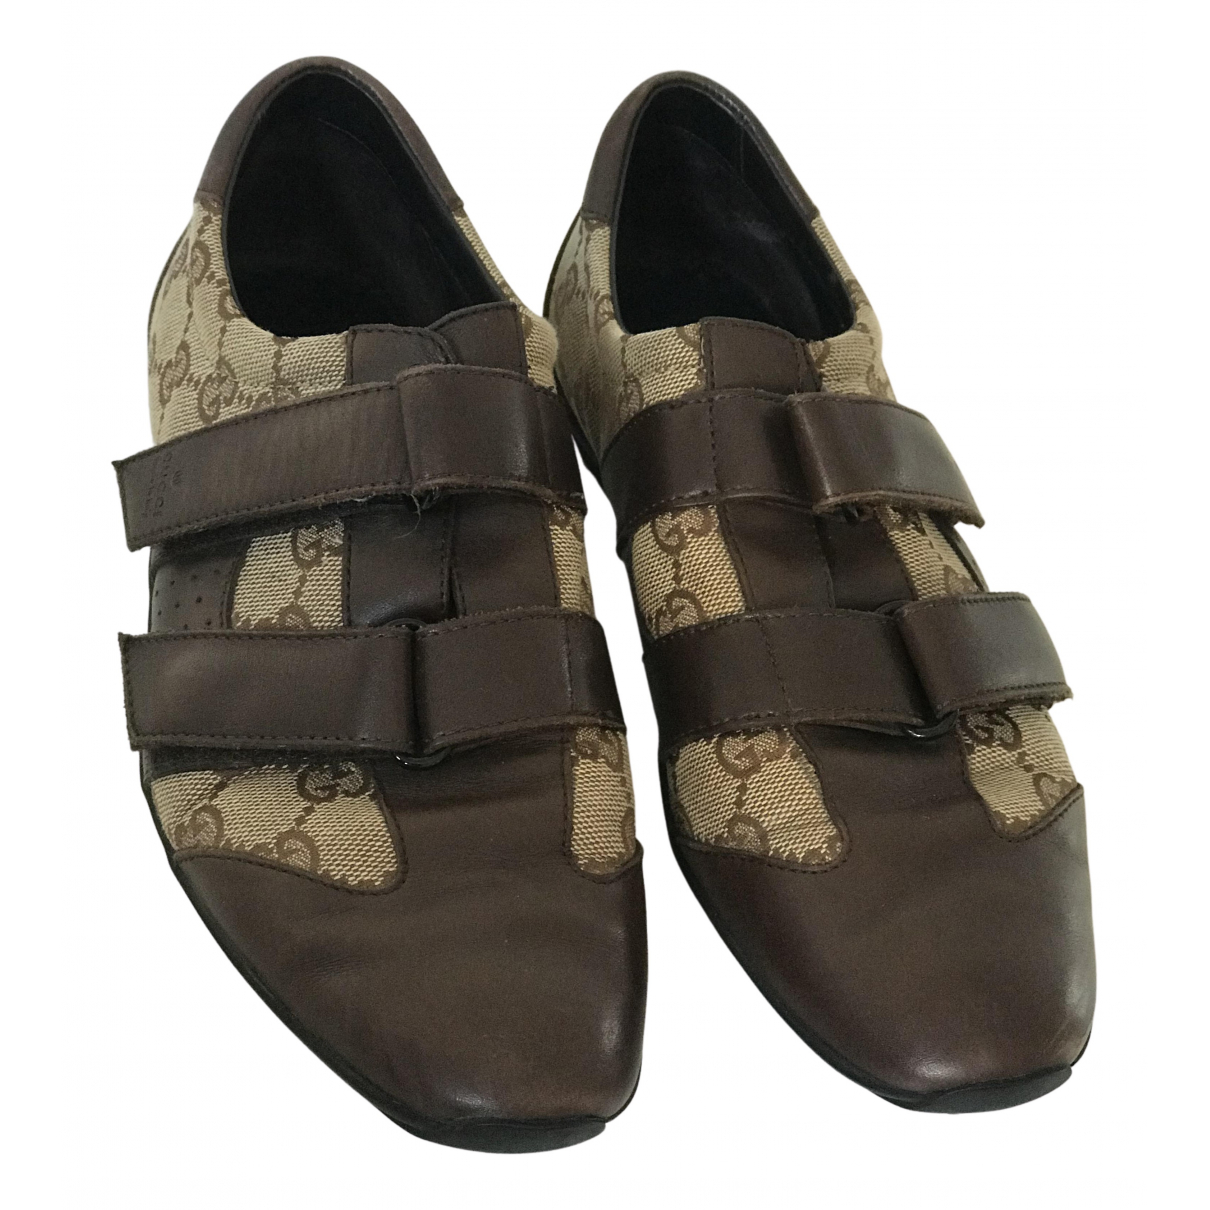 Gucci N Brown Leather Trainers for Women 38 EU